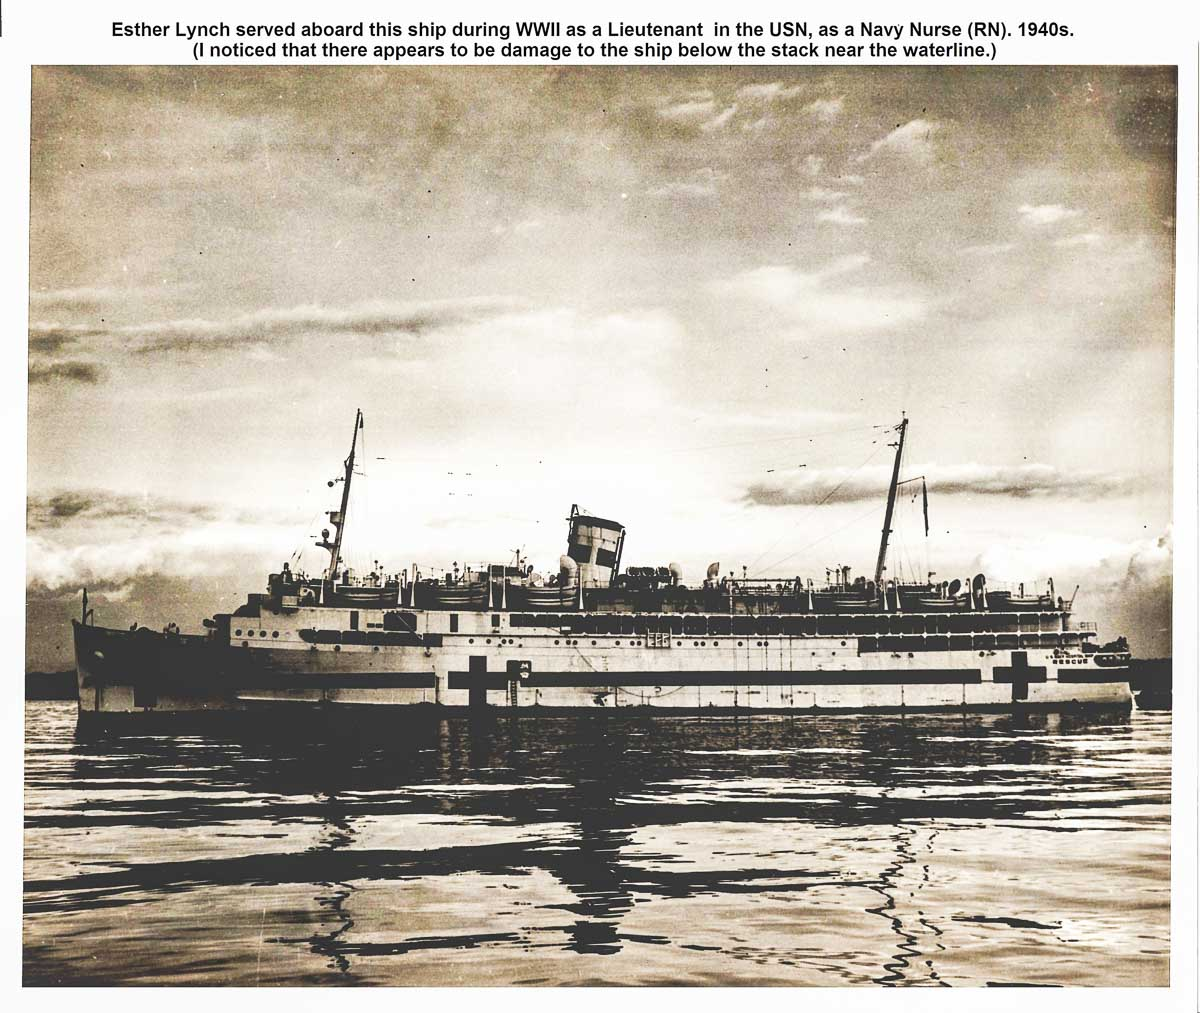 The USNHS Rescue hospital ship of the 1940s